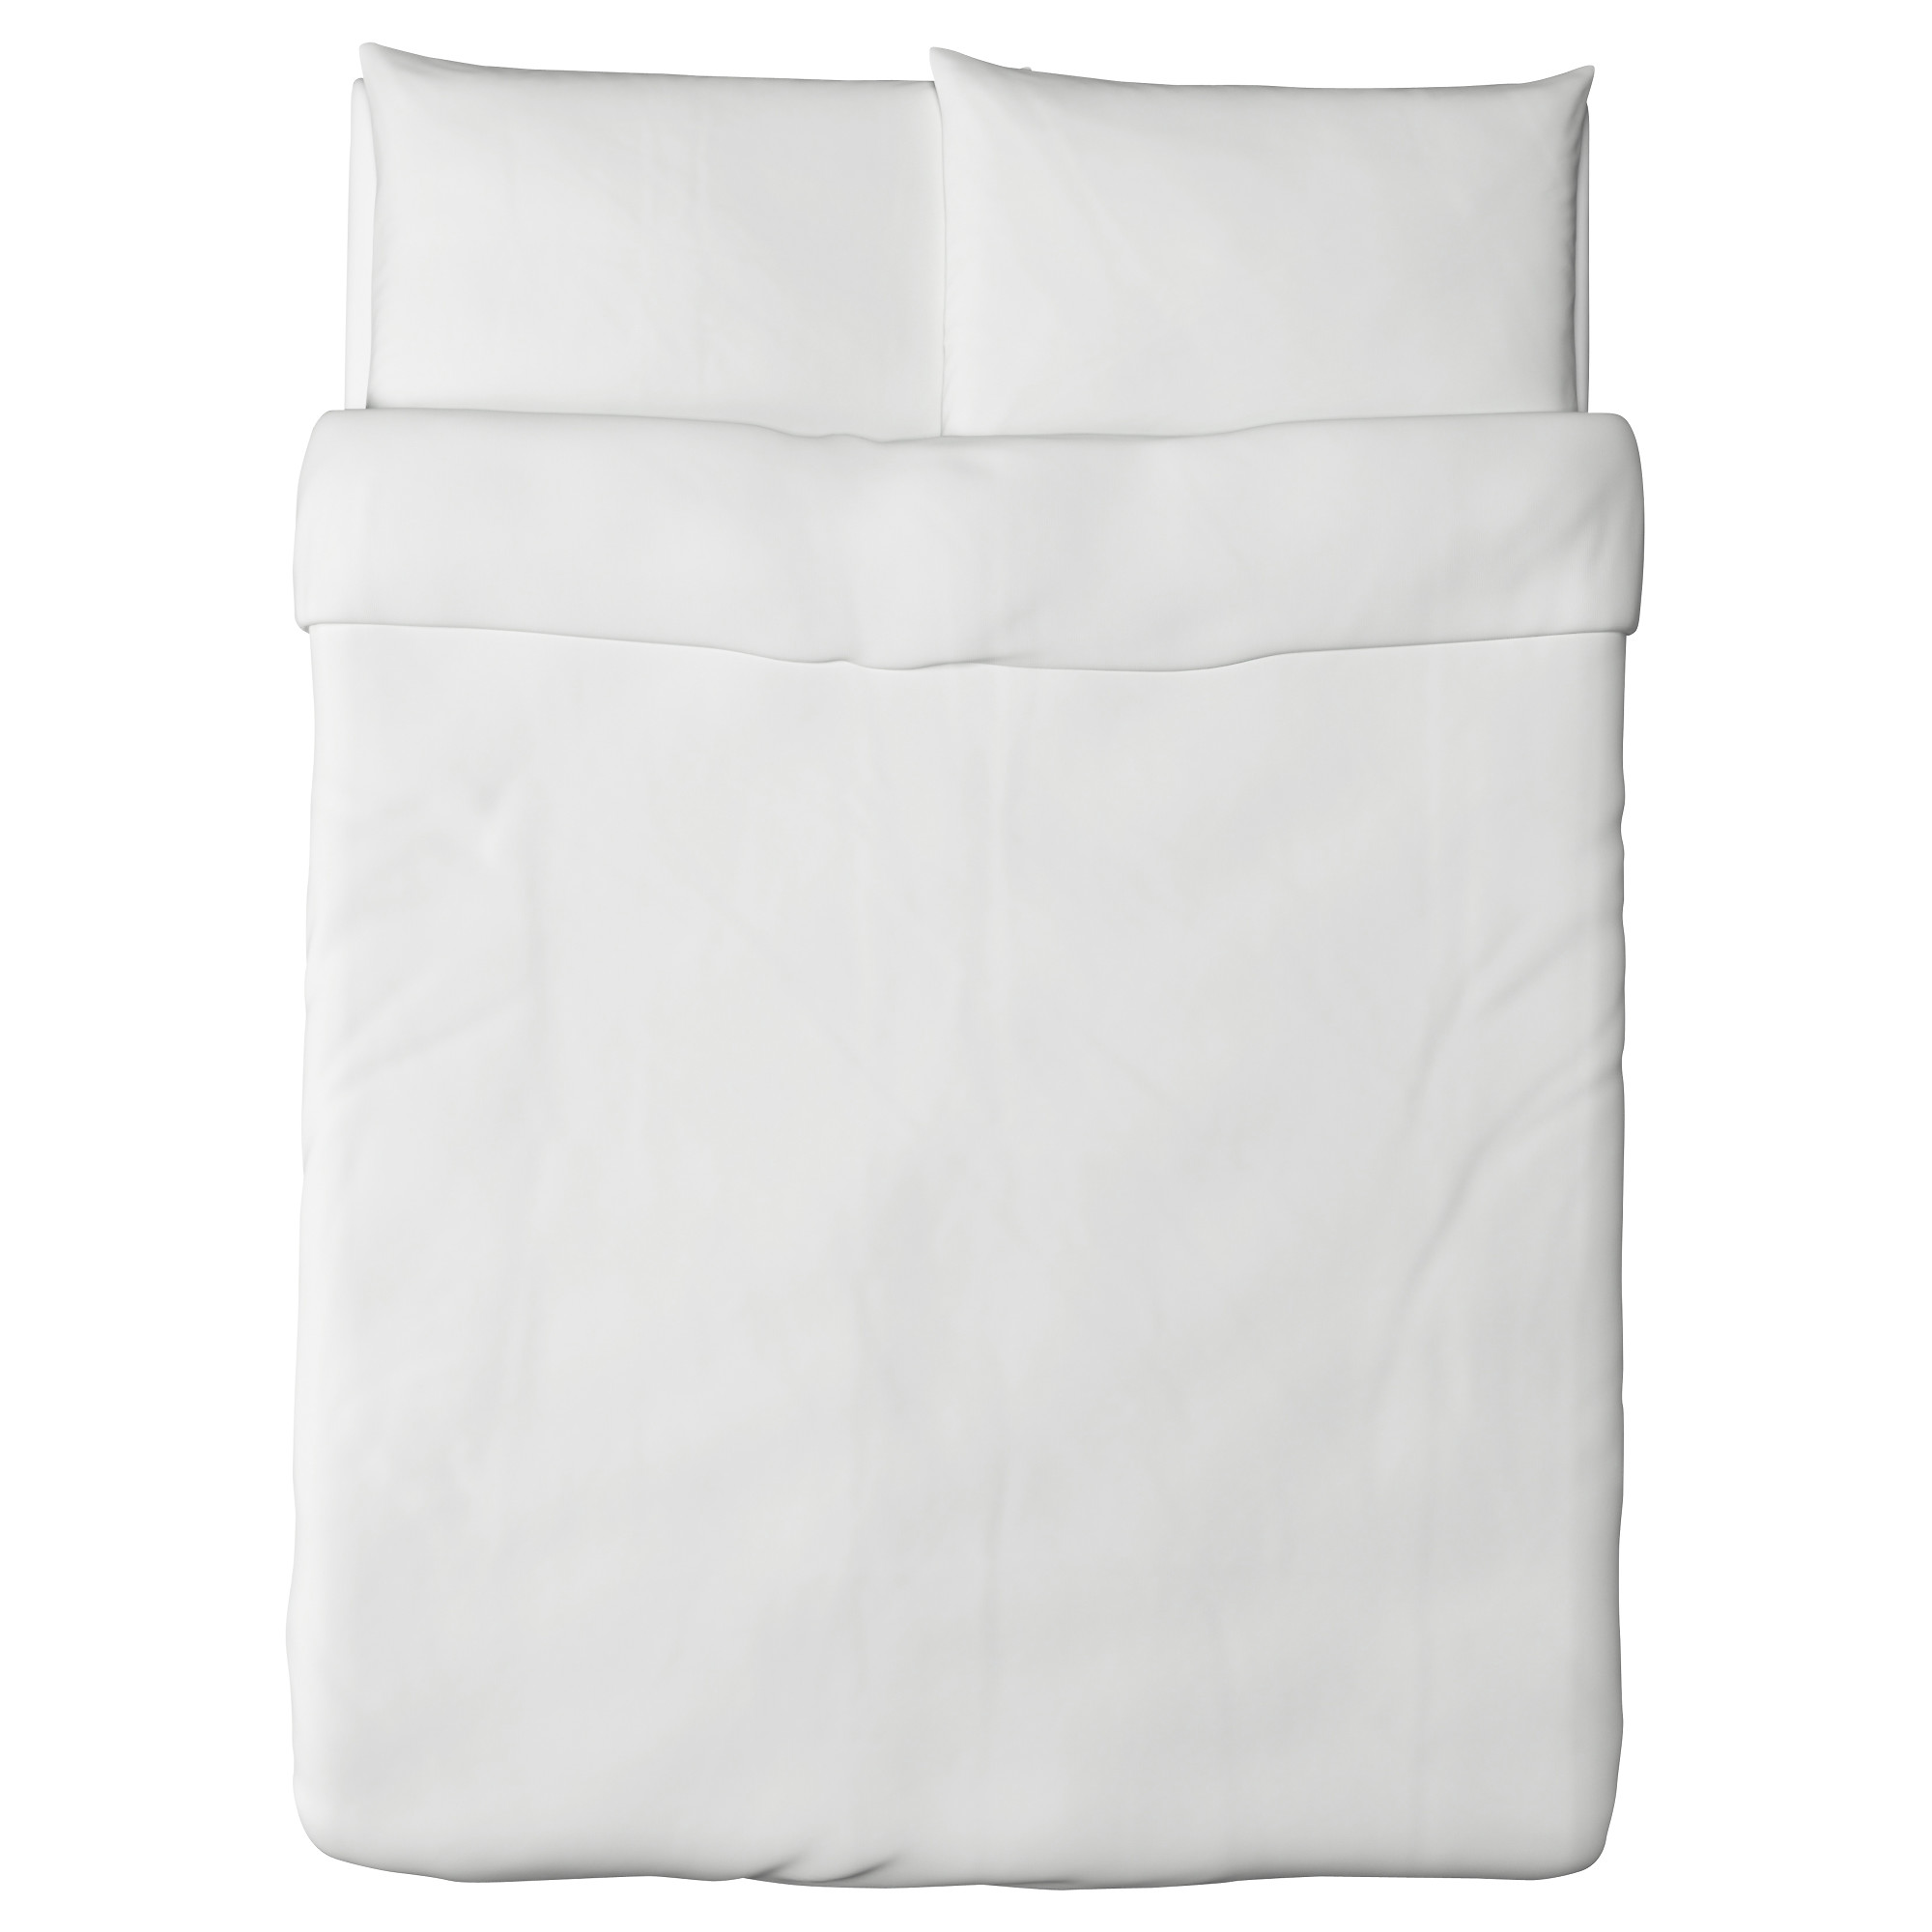 40452-Custom-Queen-Duvet-Cover-1-1.jpg